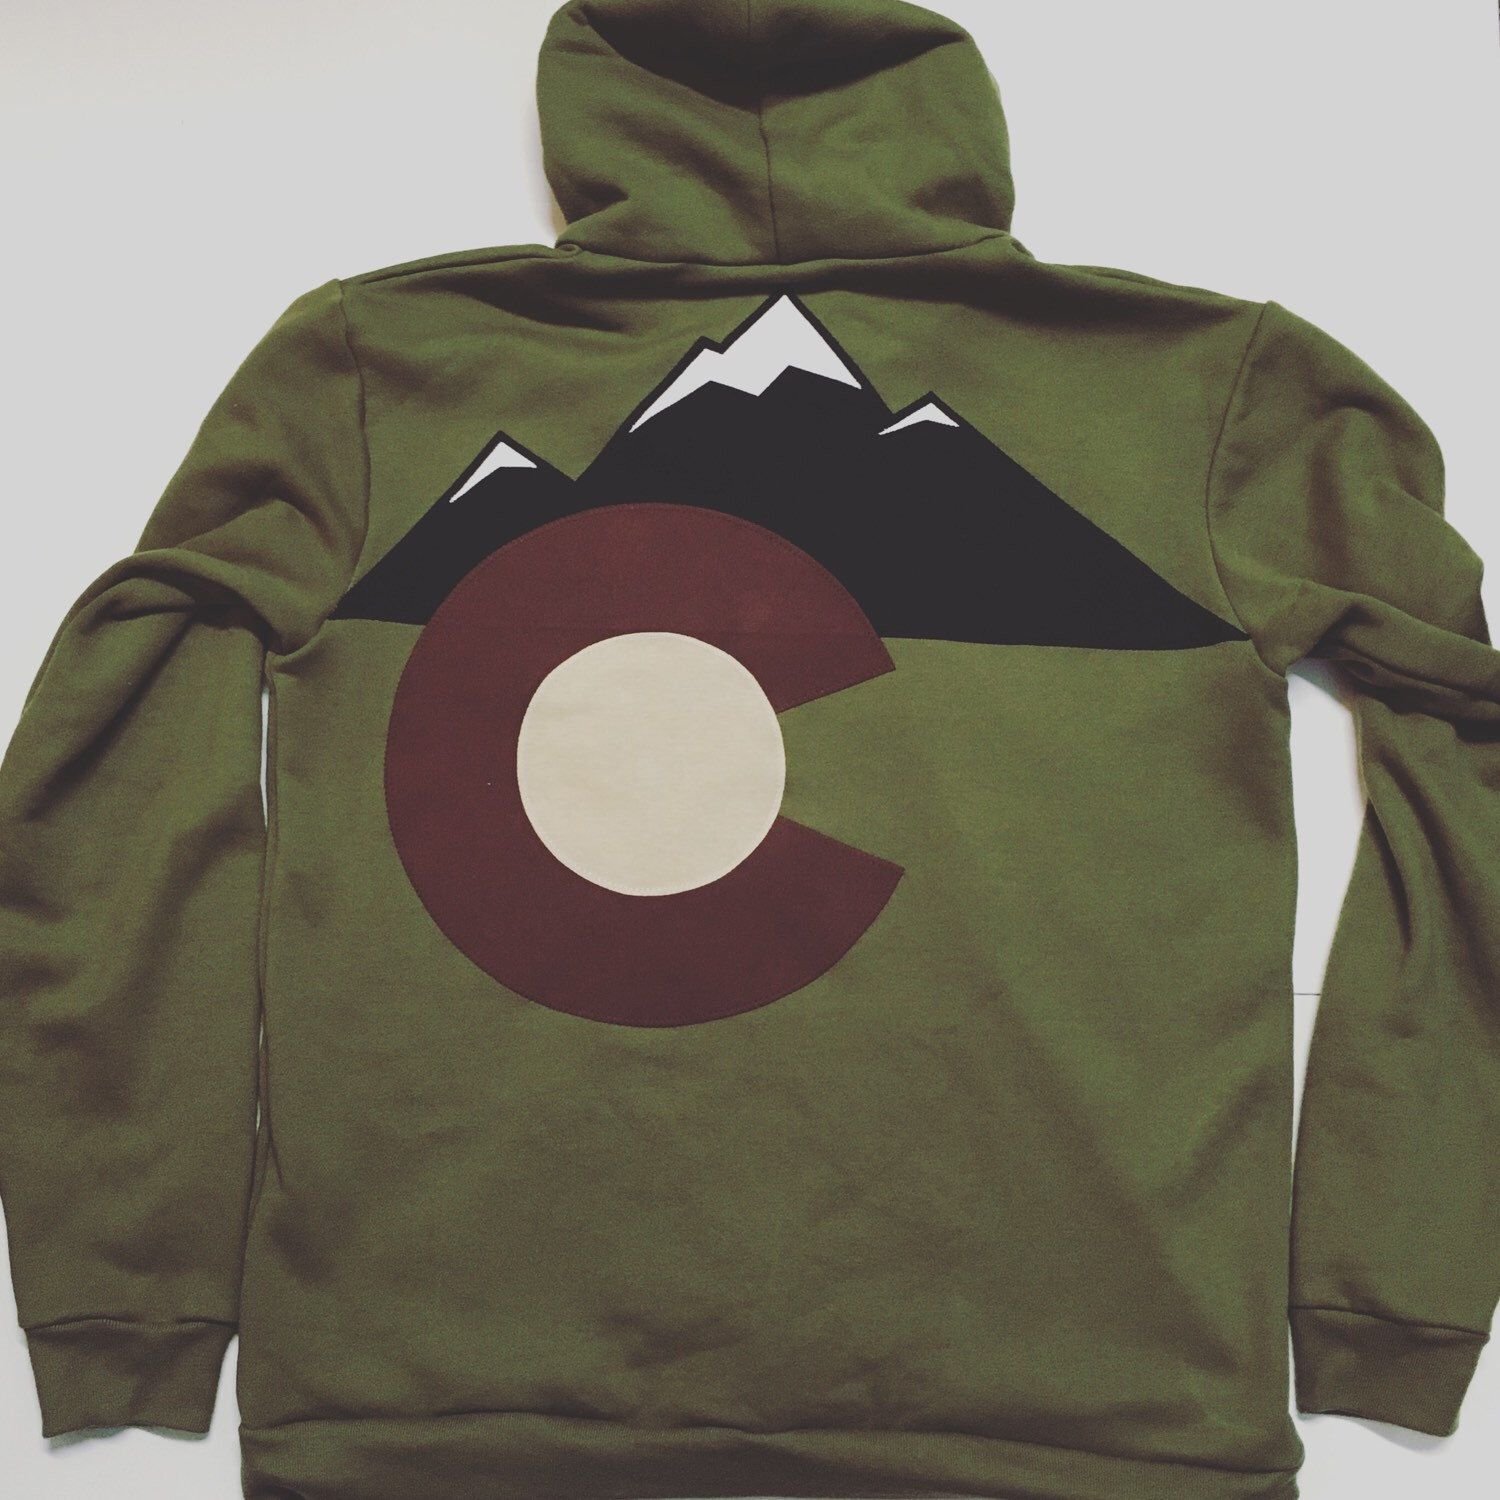 Colorado flag hoodie NEW 2016 olive green MTNS custom Hoodie 3 layer sewn flag zippered sweatshirt jacket sweater juh2P